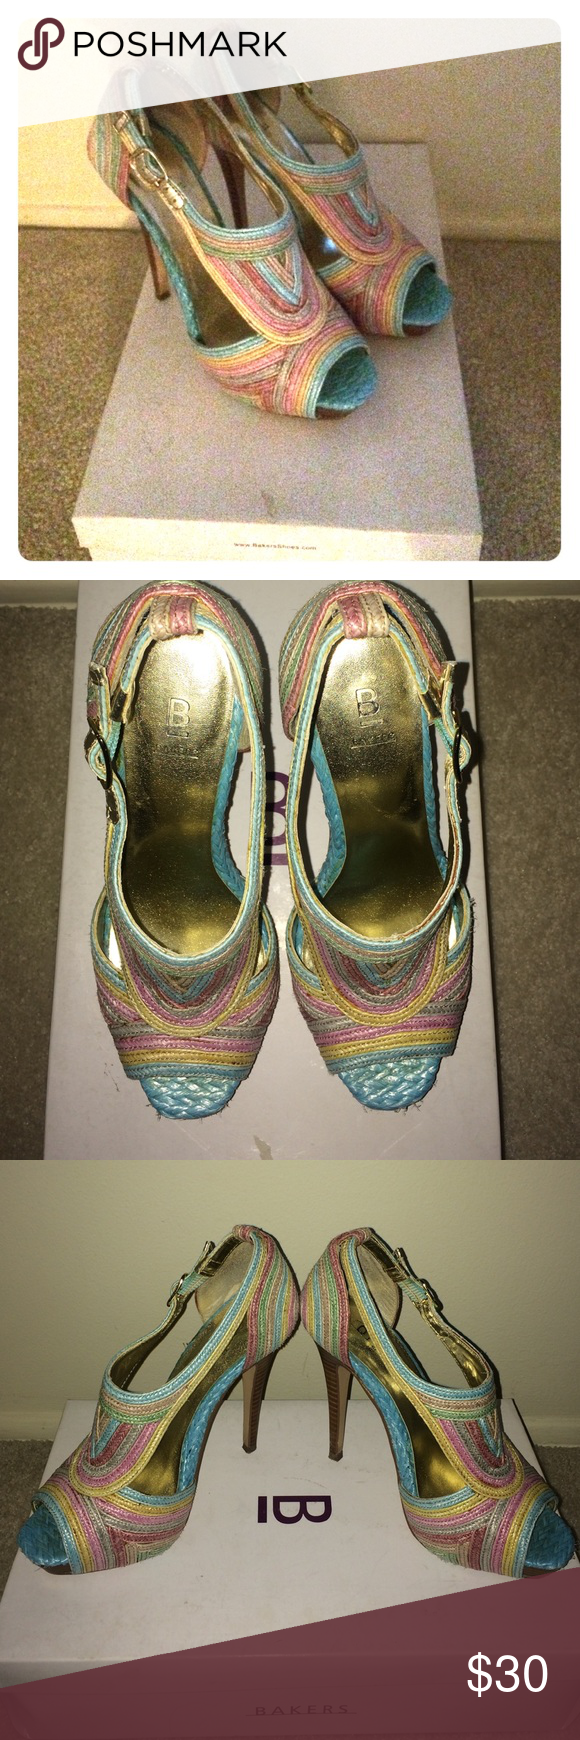 Baker Multi-Colored Pumps Bakers Size 6.5 Pump, Multi-Colored. These shoes are stunning and great for summer! Worn a couple times, in great condition. Bakers Shoes Heels